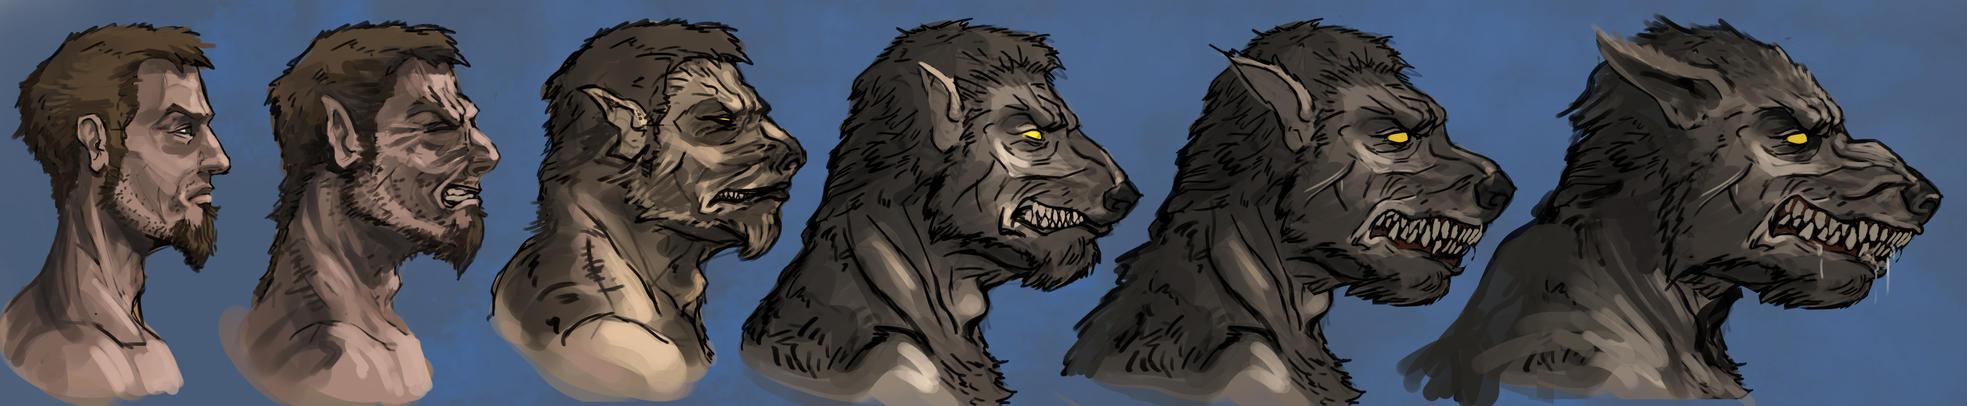 Werewolf transformation 2 by Andy-Butnariu